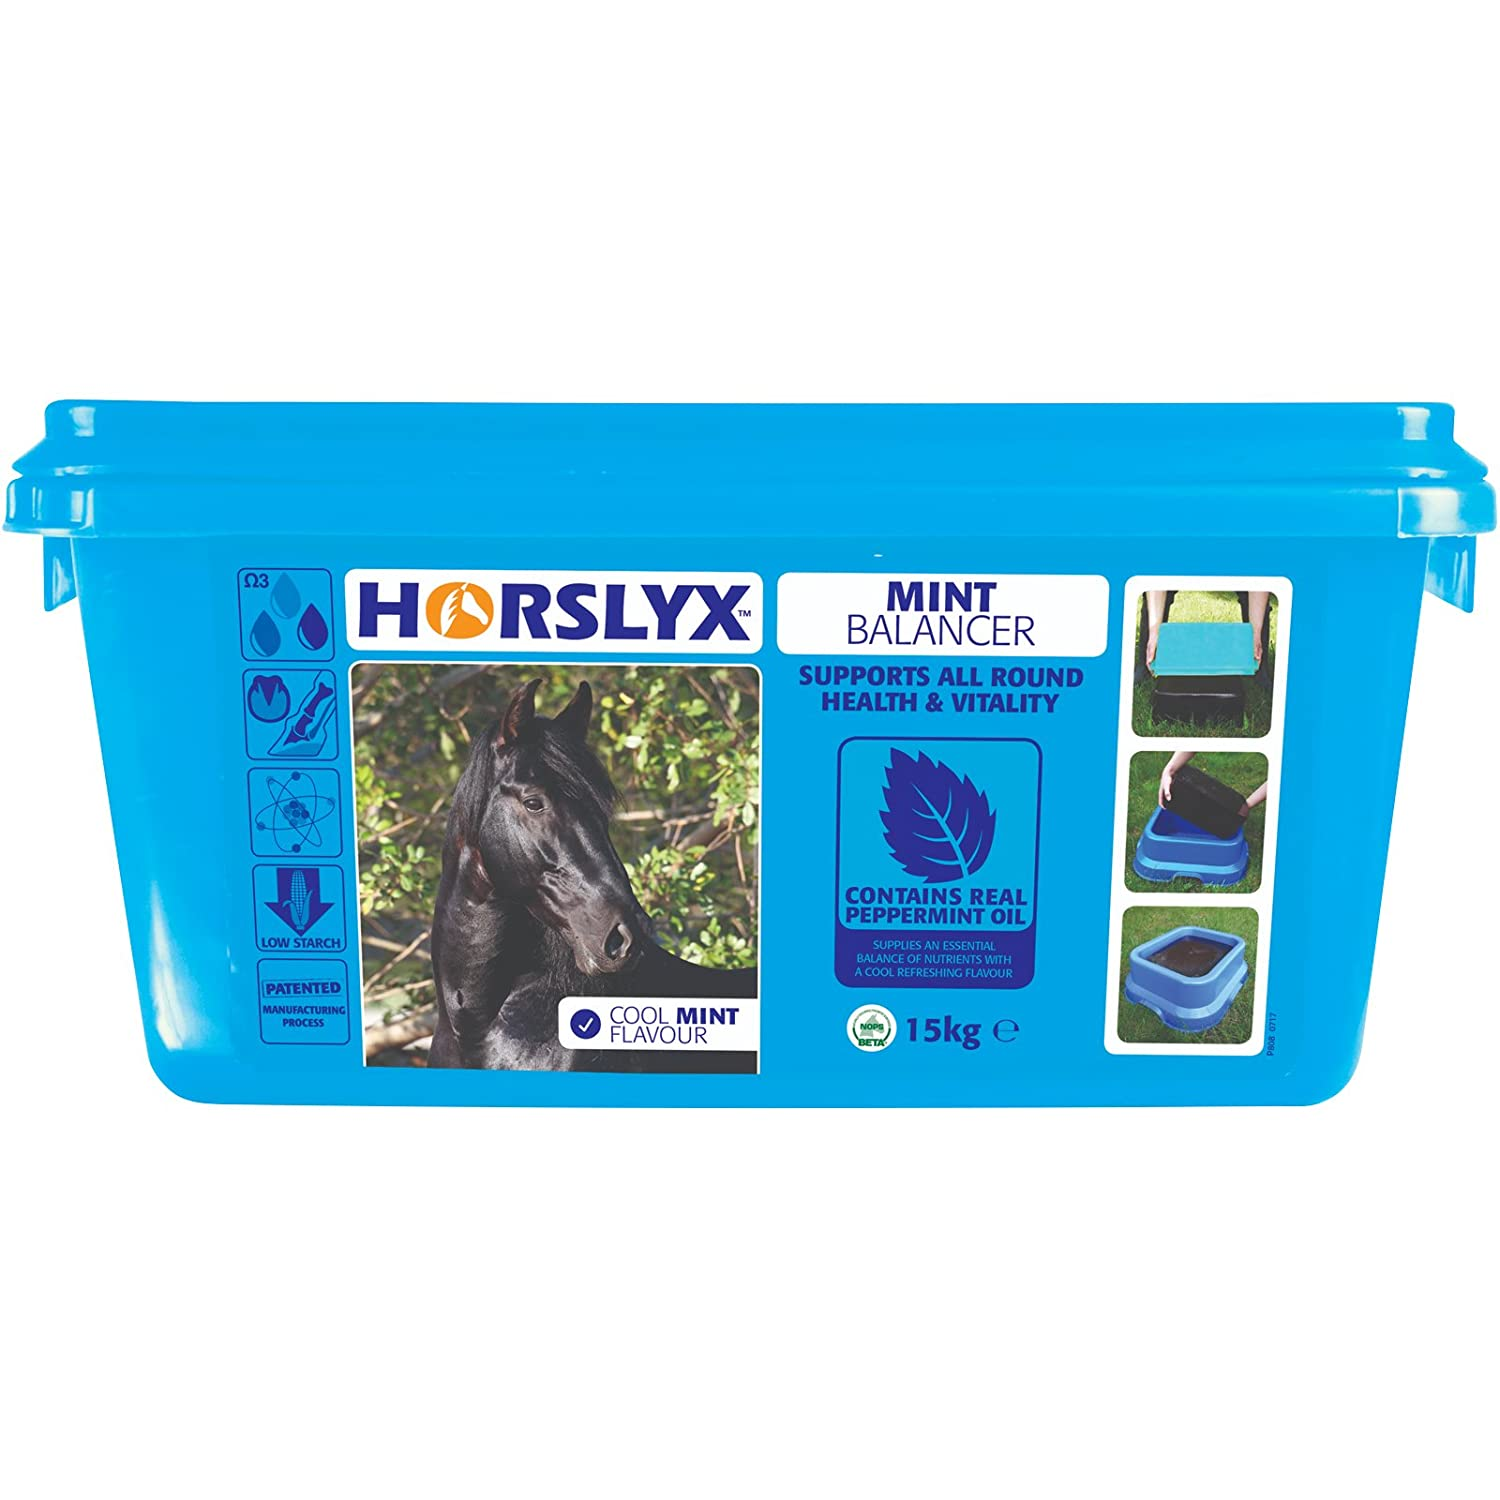 15kg Horslyx Mint Balancer Lick Tigerbox® & Horslyx Mint Balancer Lick x 15kg for All-Round Health and Vitality by Supplying an Essential Balance of Nutrients with a Cooling Refreshing Flavour & Antibacterial Pen.